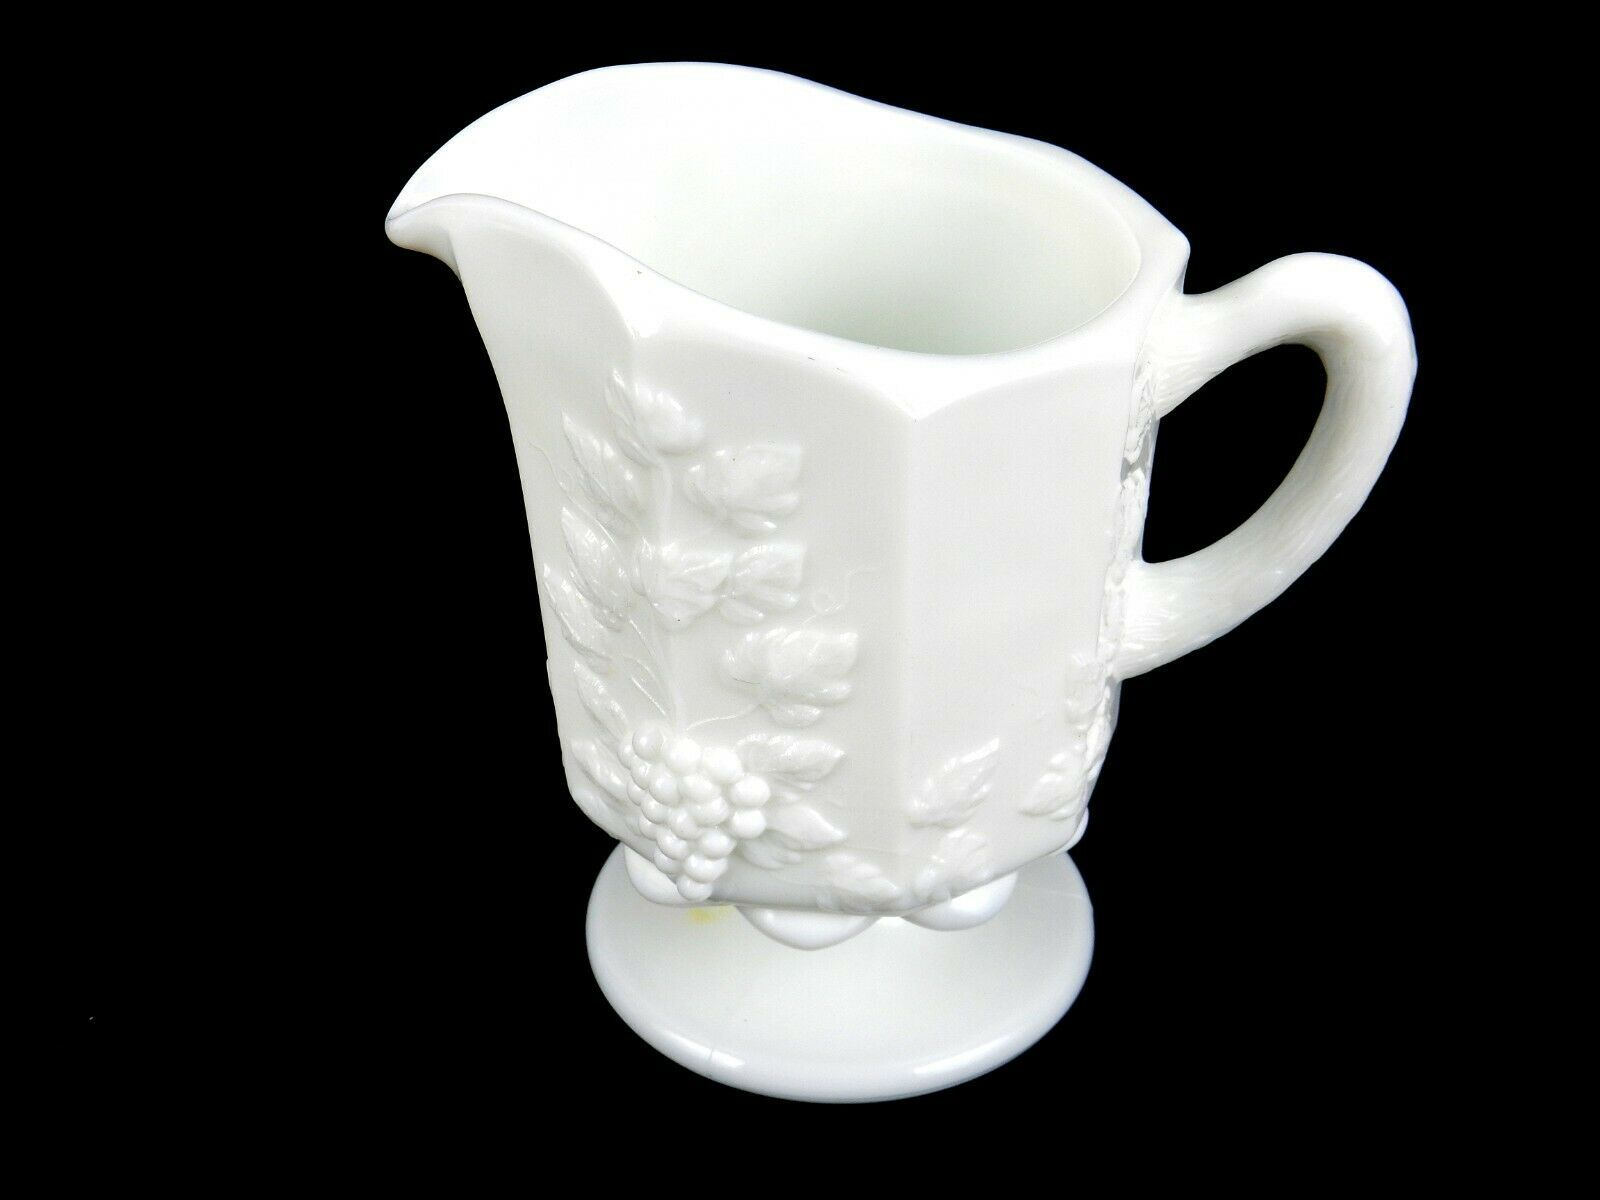 """5"""" Milk Glass Pitcher, Westmoreland Paneled Grapes Pattern, Cream, Syrup, Sauces - $14.65"""